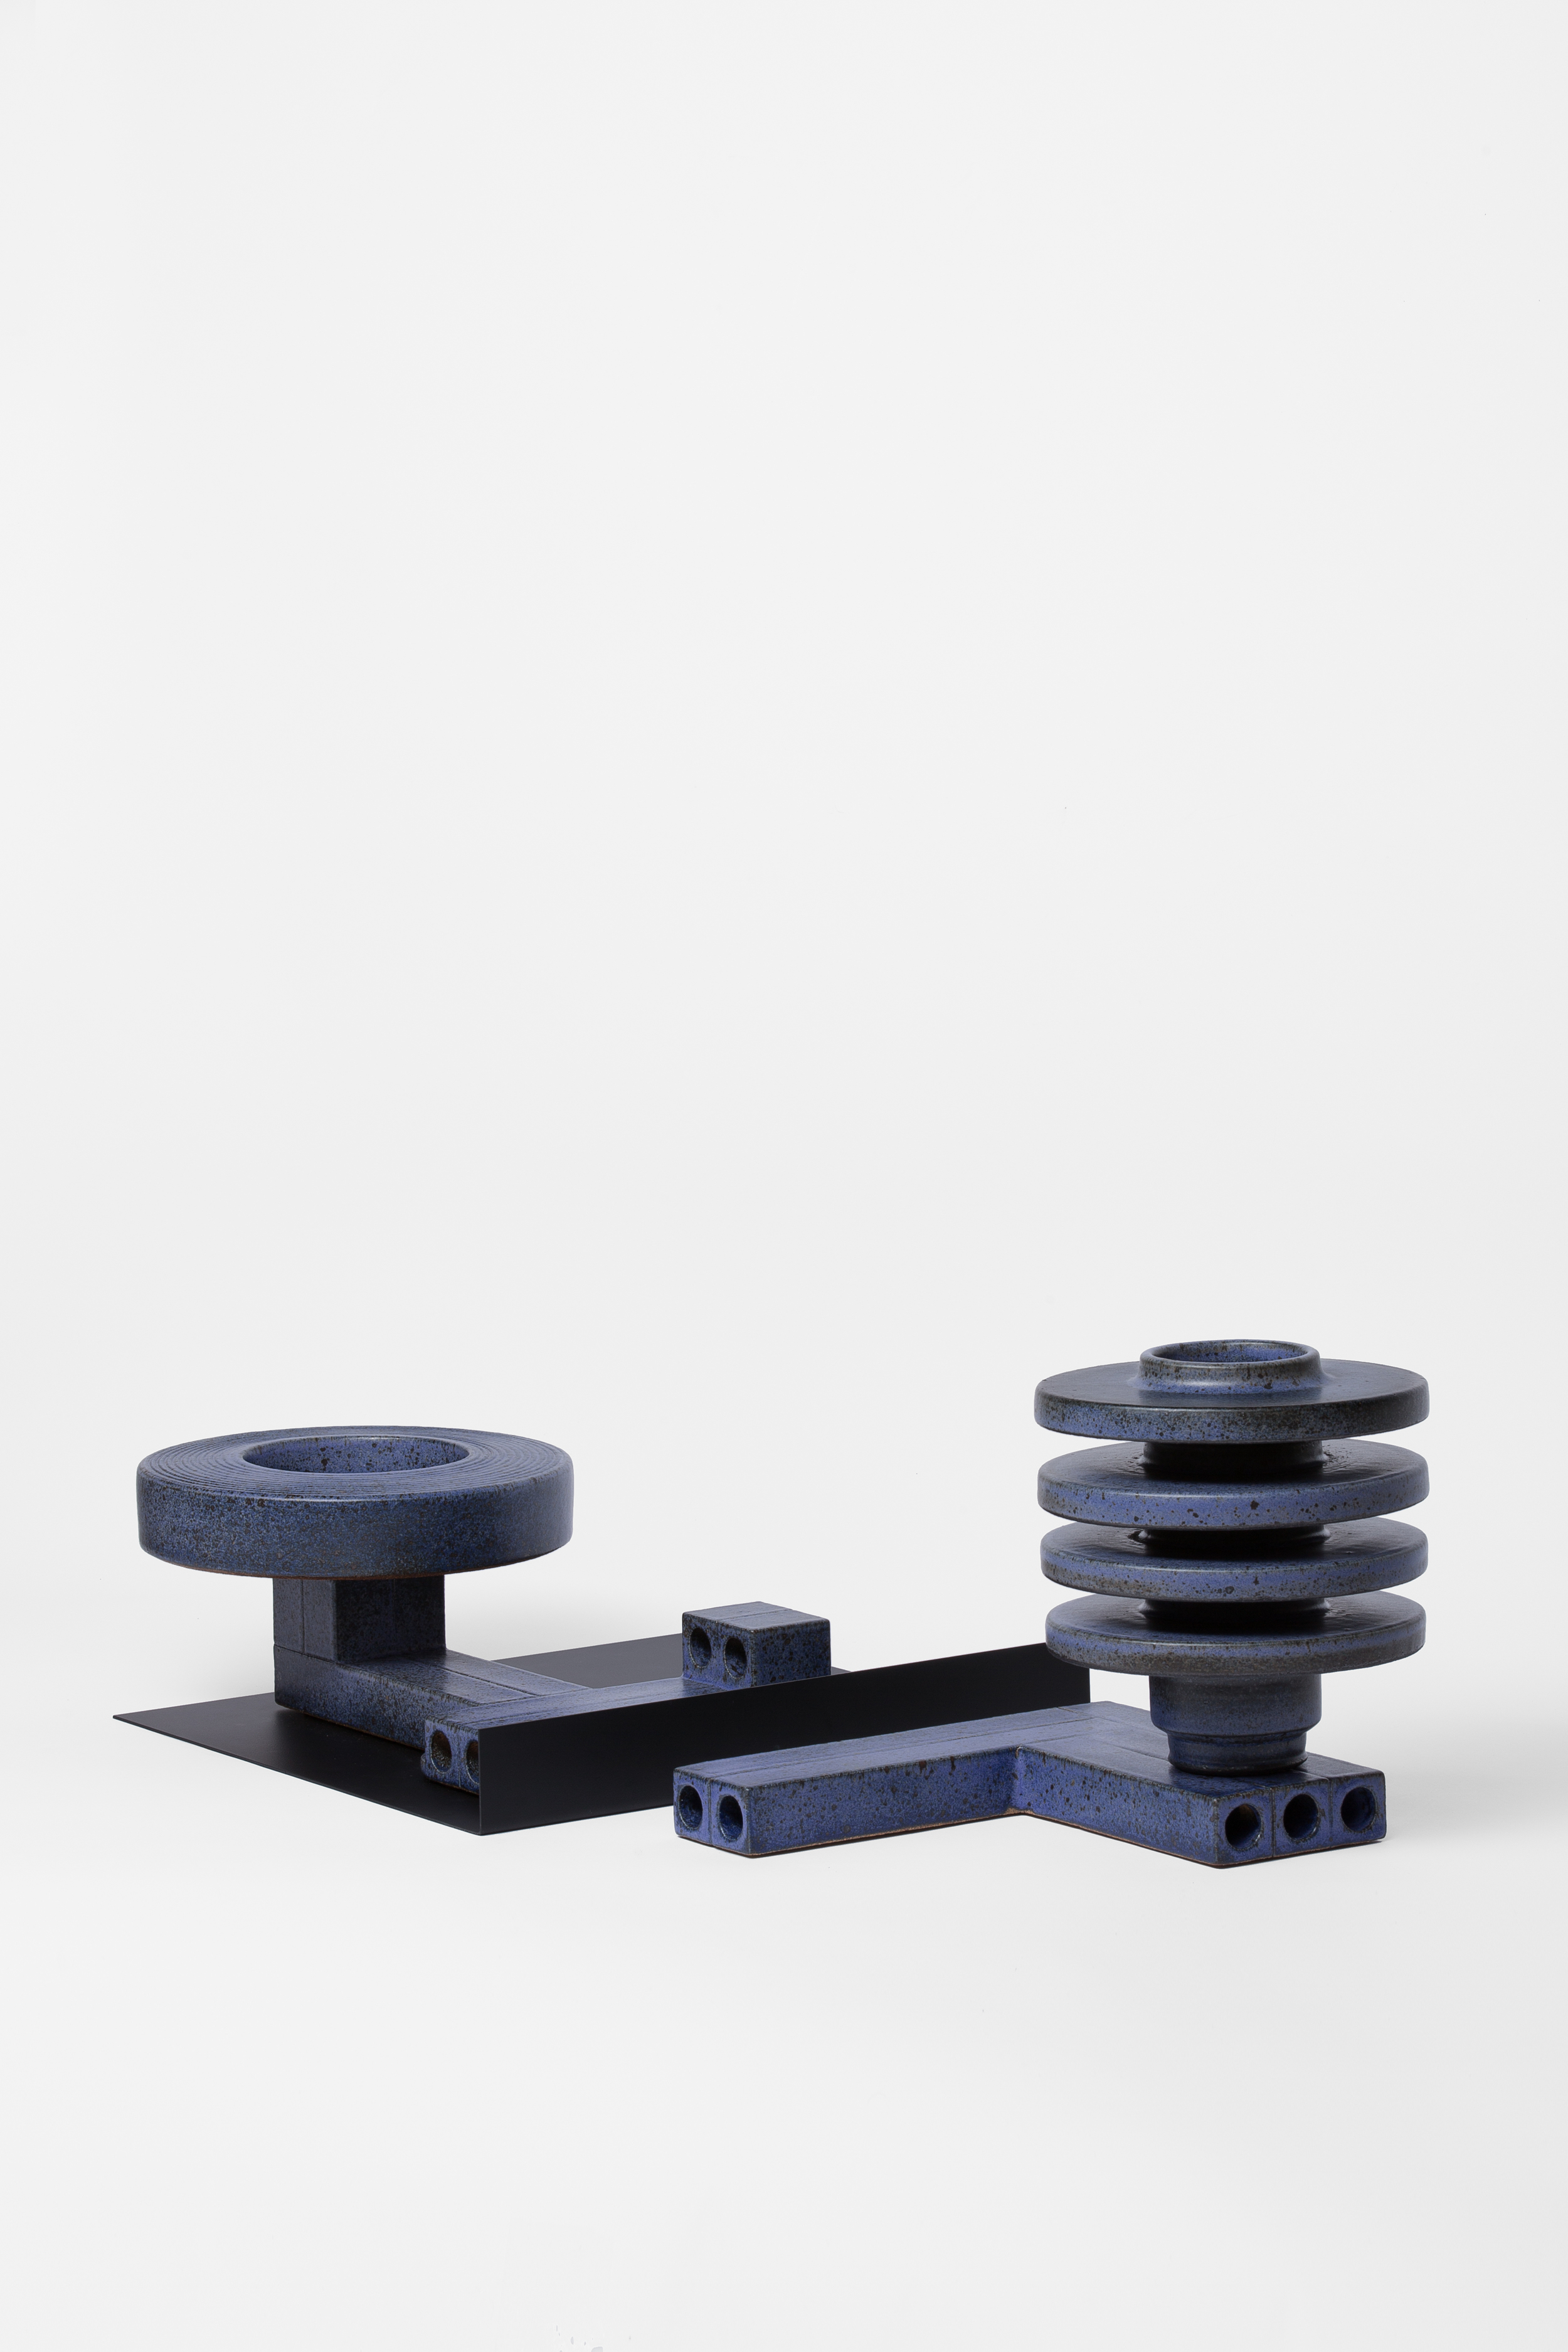 Level Vessel (w/ L-Shaped foot) & Blue Double Wall Bowl on Extruded Pedestal (w/black tray)